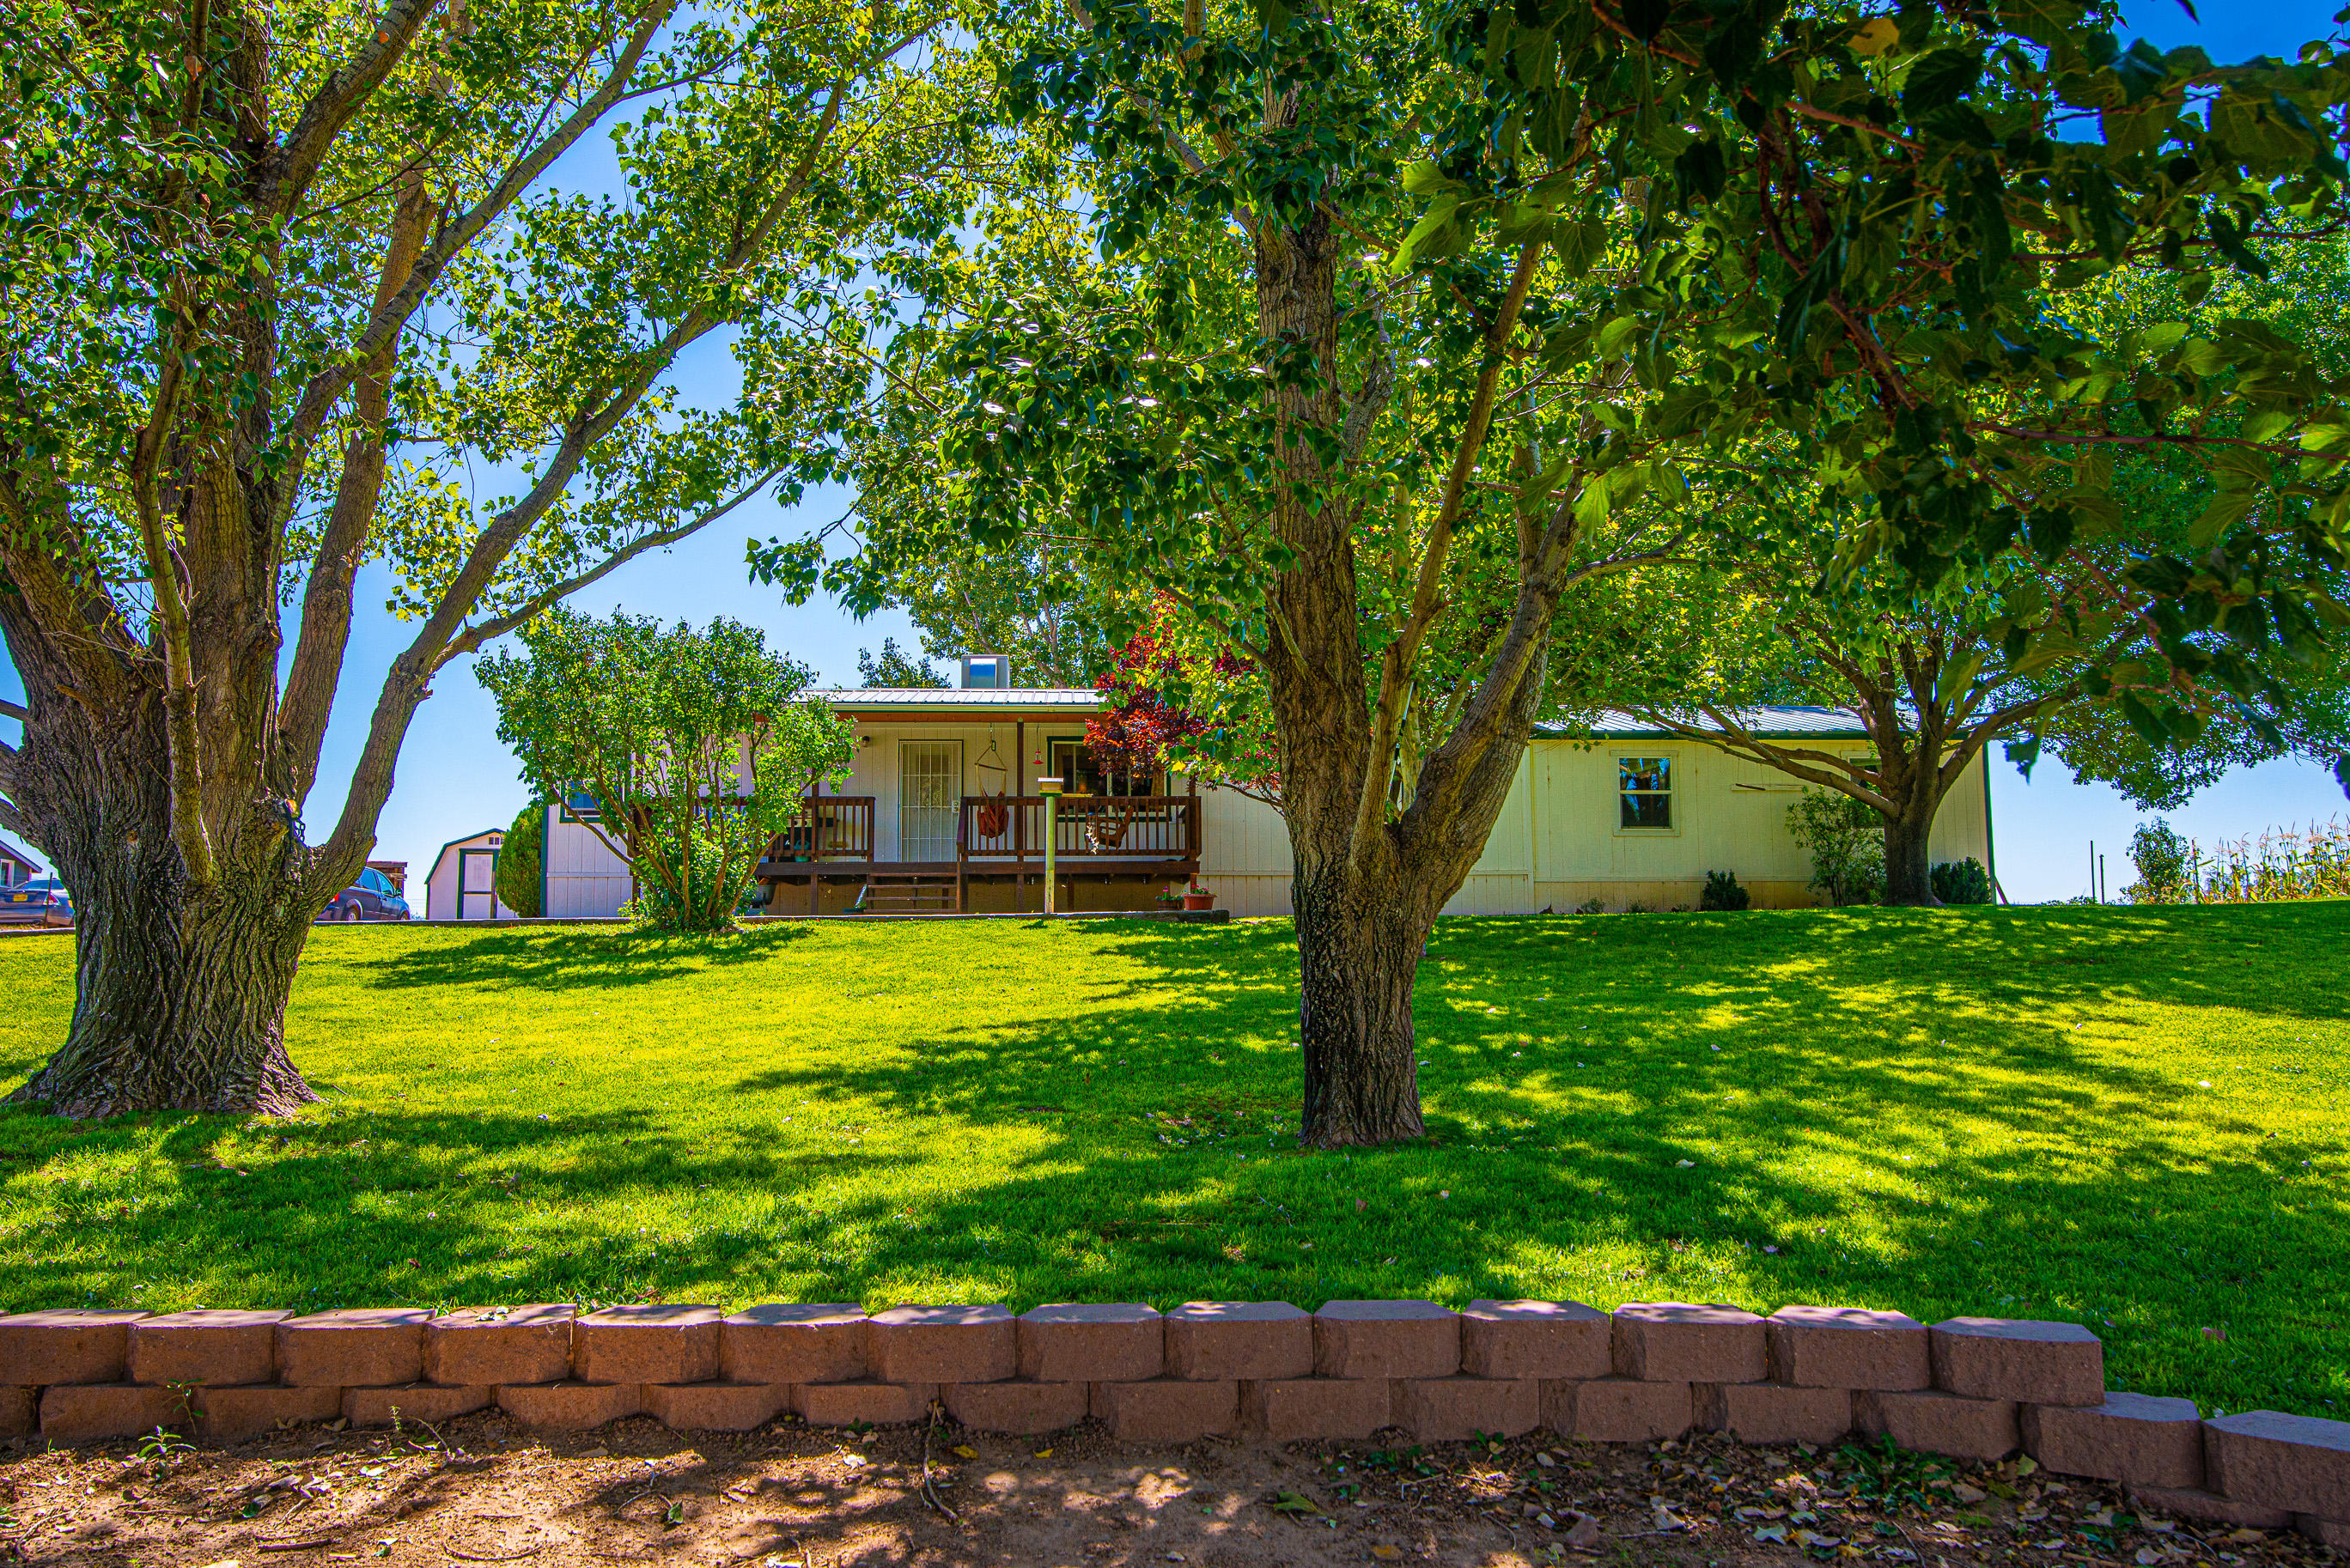 County living at it's finest! Come see this wonderfully kept home sitting on 1.25 acres. This home has plenty of space, two living areas, formal dining area and open kitchen. Covered porch, manicured grass, storage shop with workshop area. Views to the east!